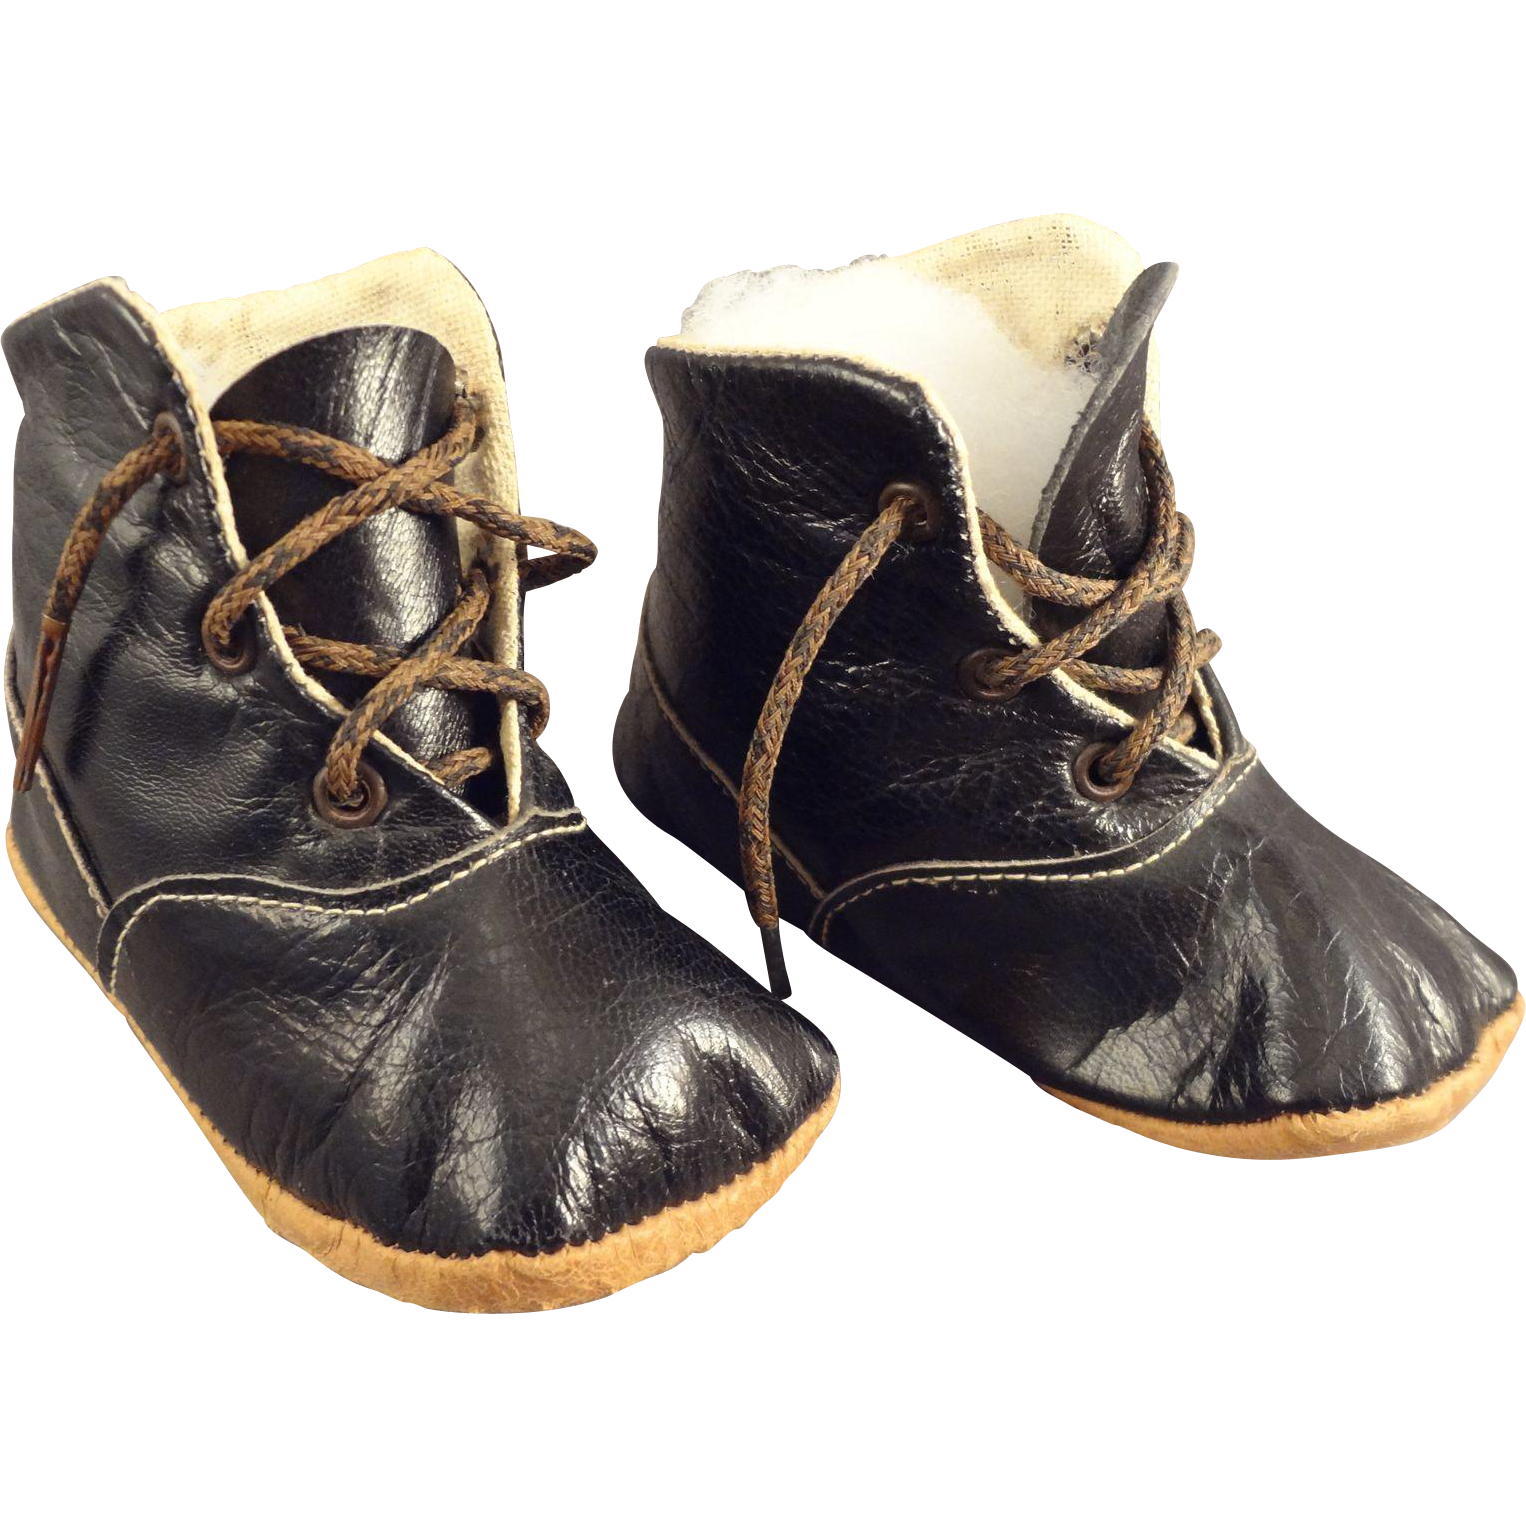 Black sleek doll boots - S S Sleek black boots with zippered sides. Color options are for faux-fur collar only! Size 1(MT) comes in white ONLY.